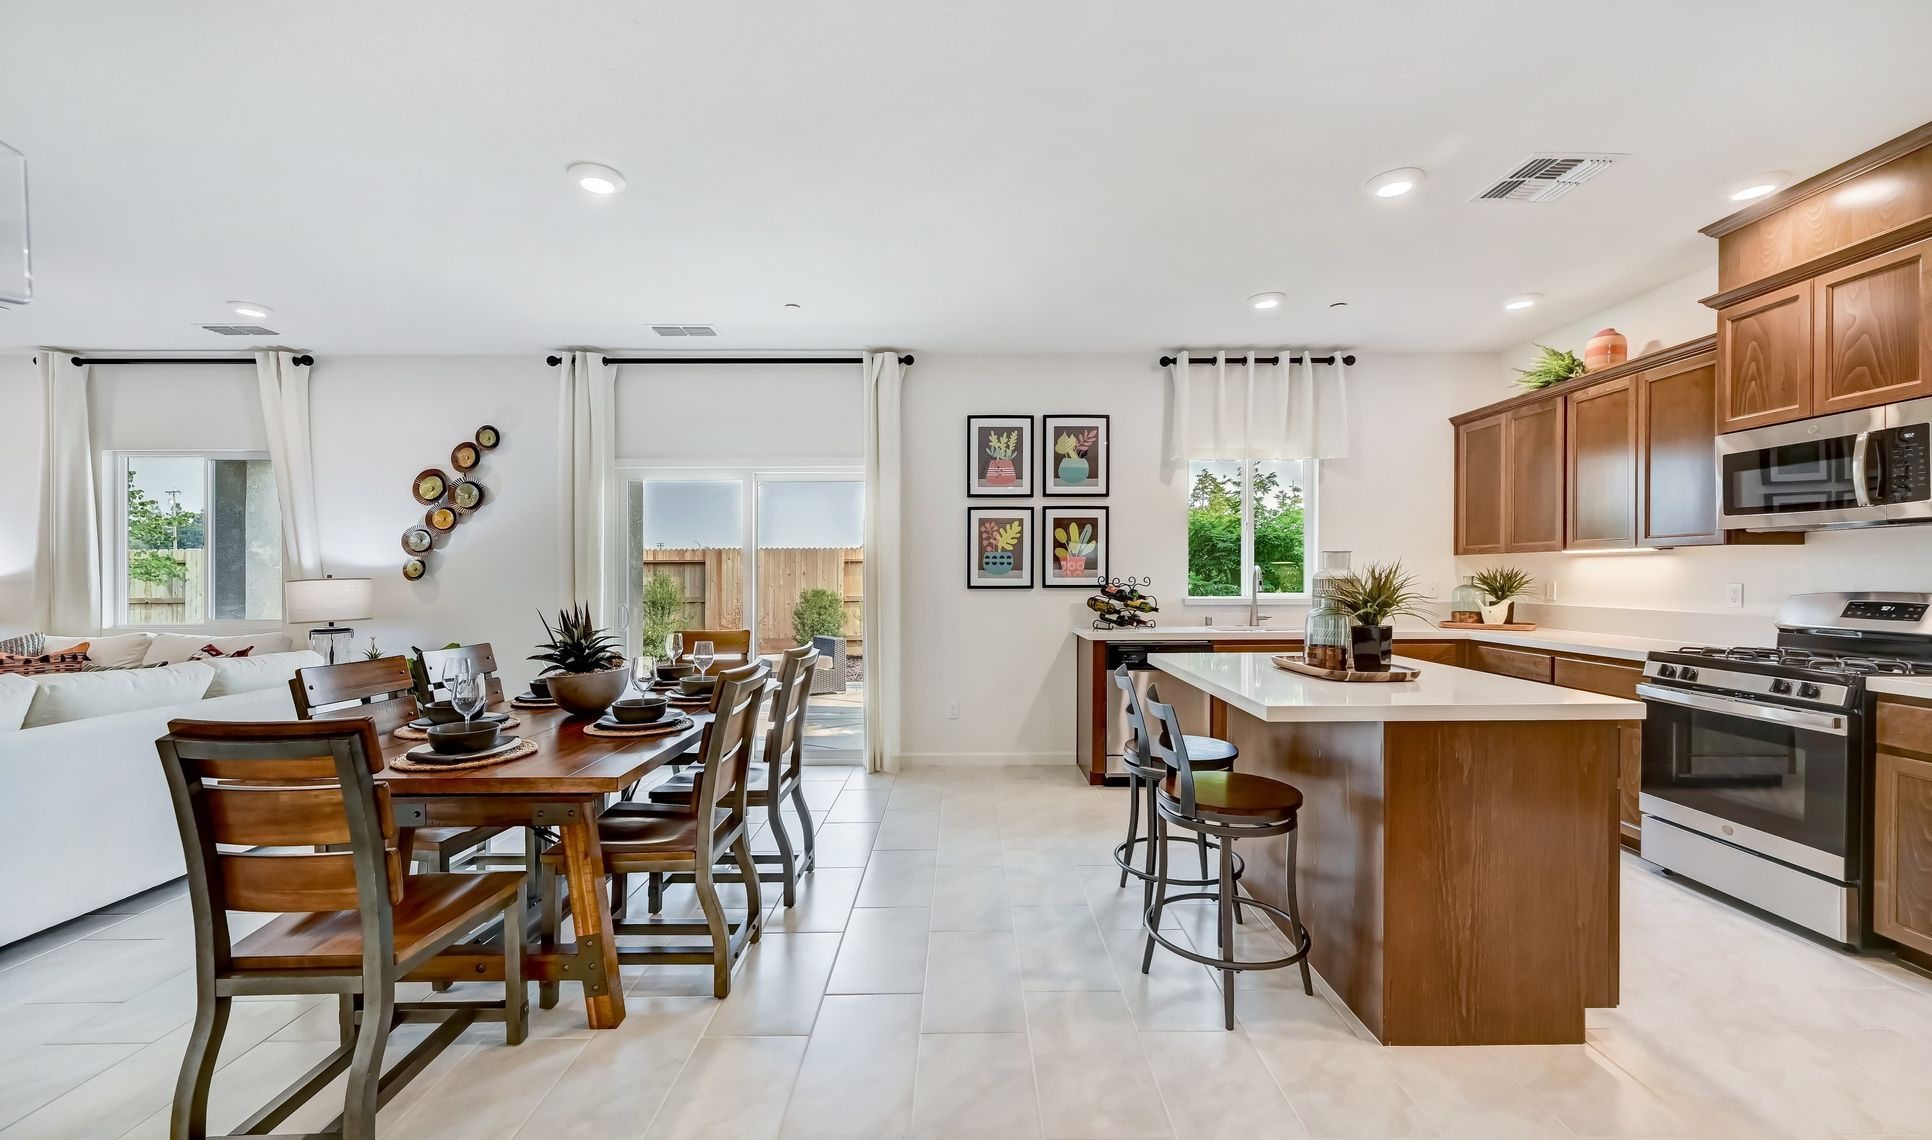 Interior:Dining area with access to patio